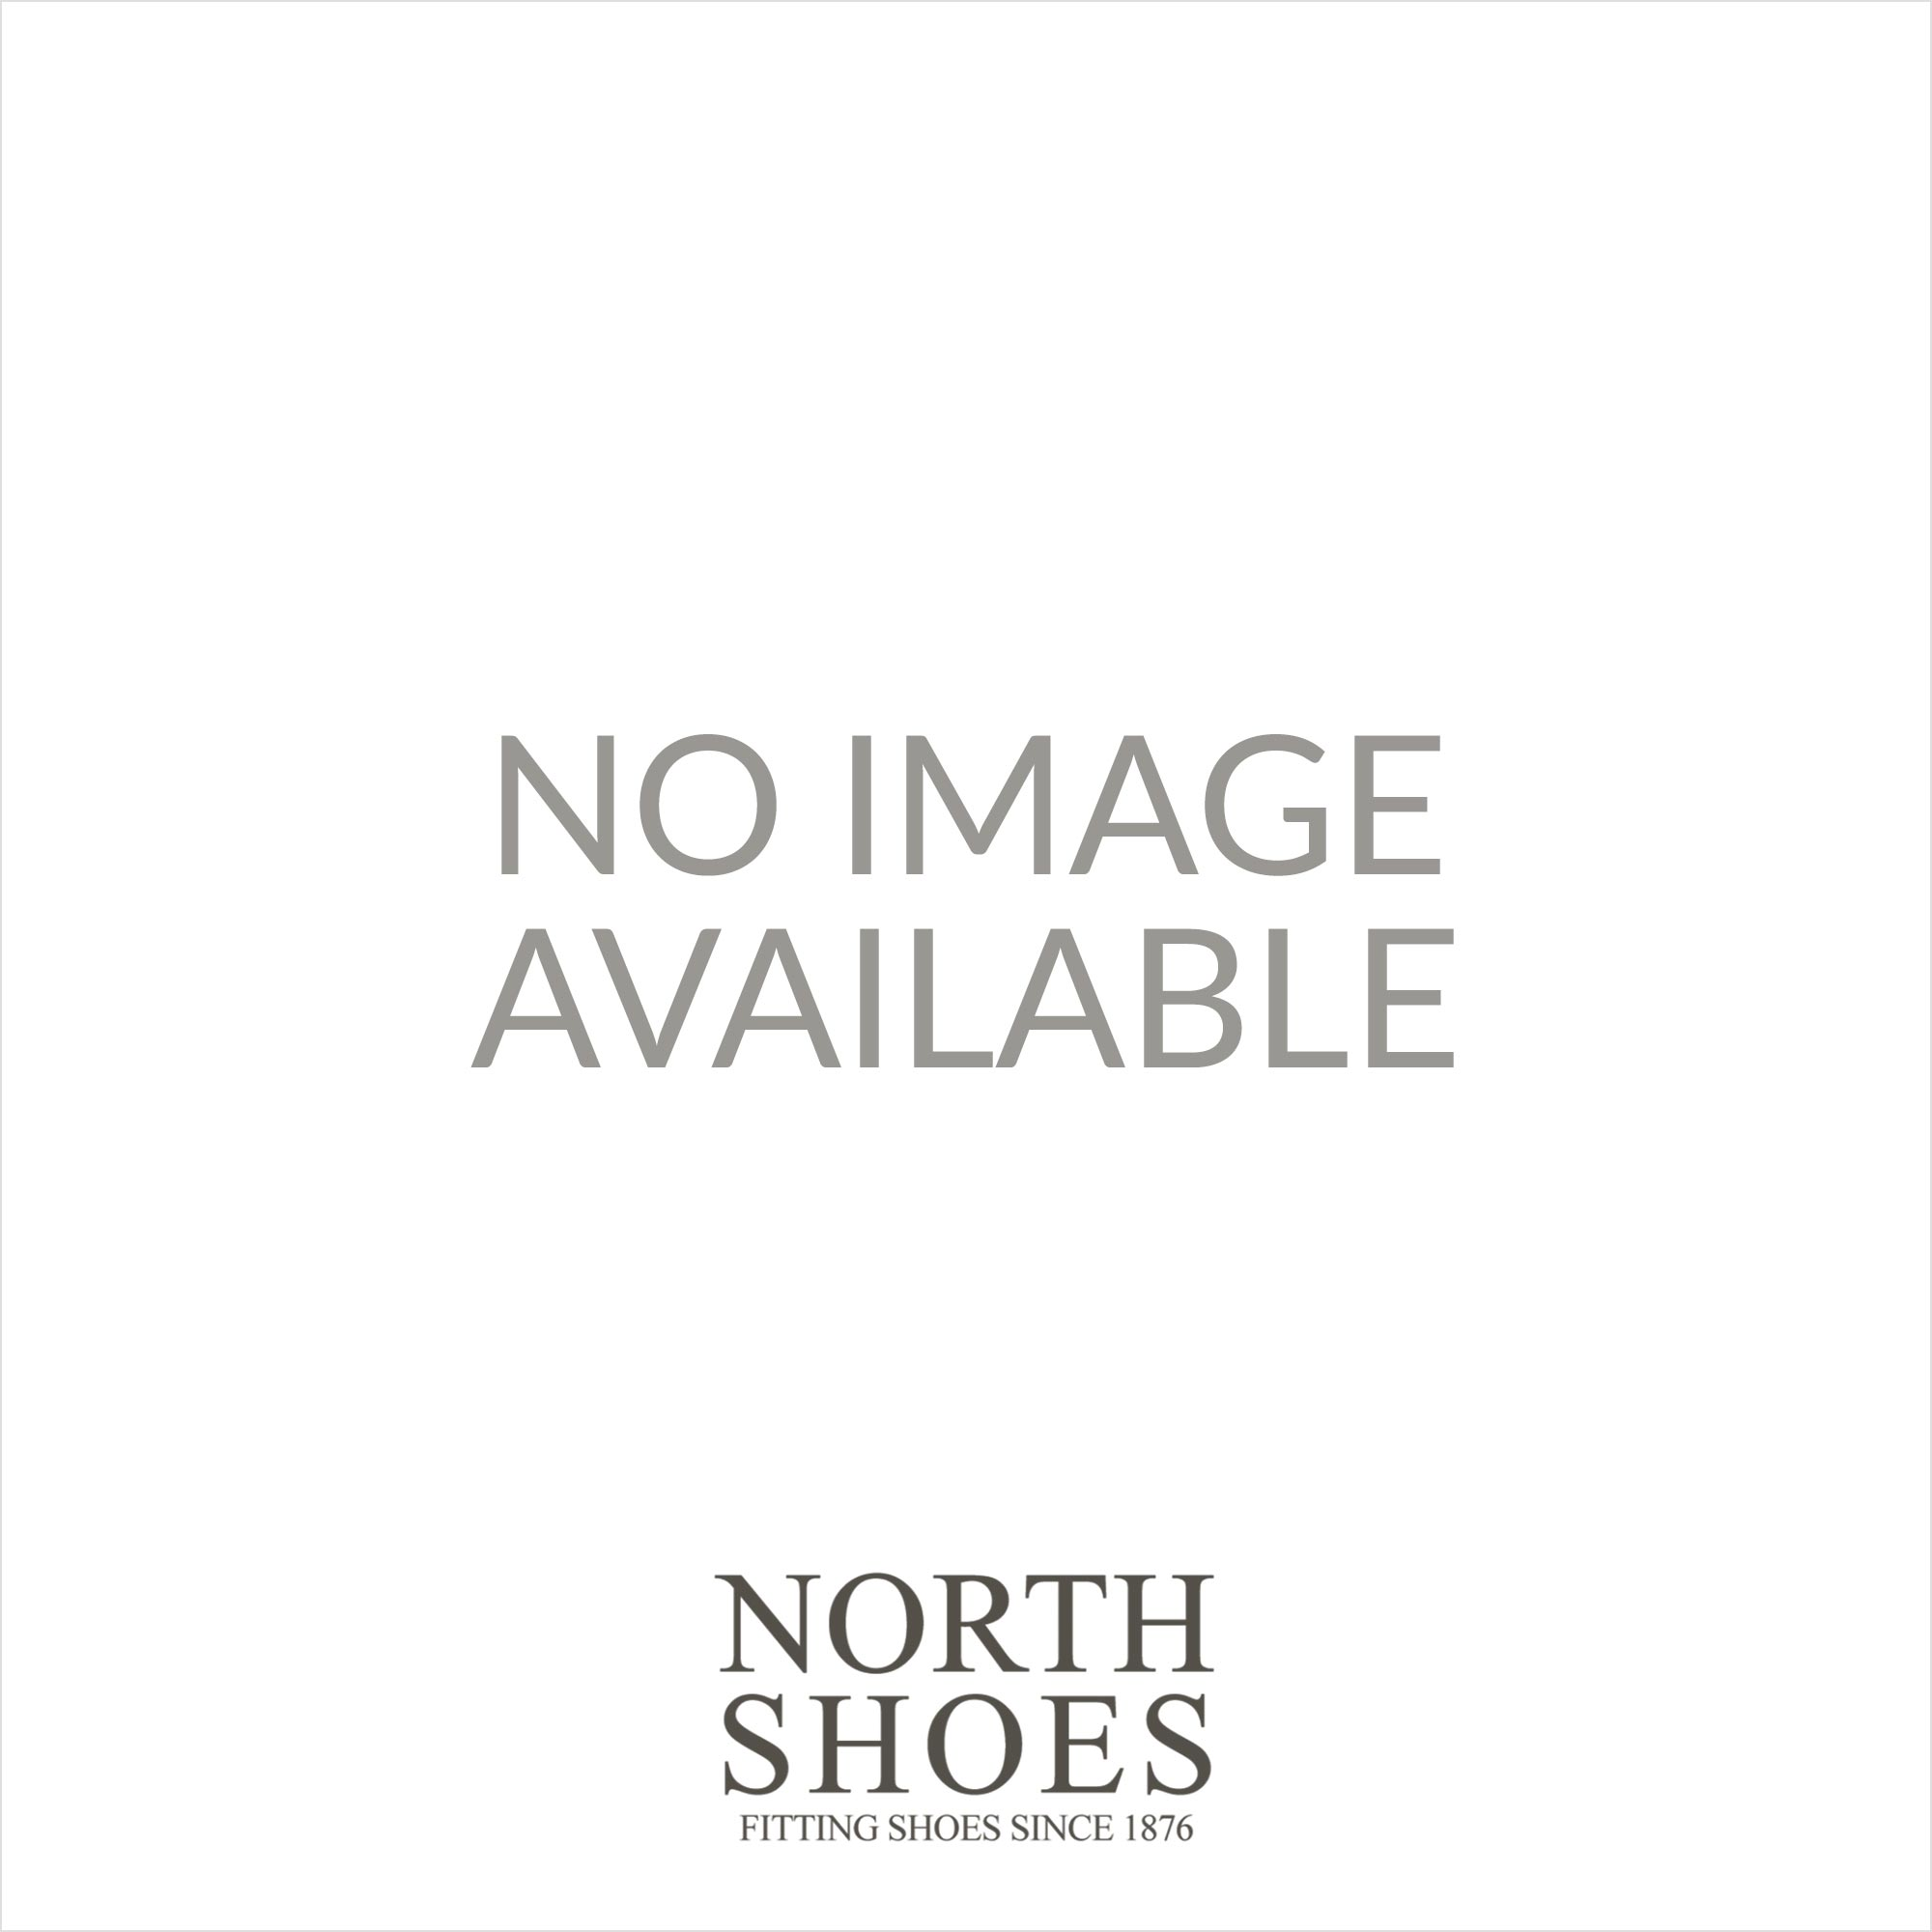 4aaa8c823c7e Converse Chuck Taylor All Star M7652C White Canvas Unisex Lace Up ...